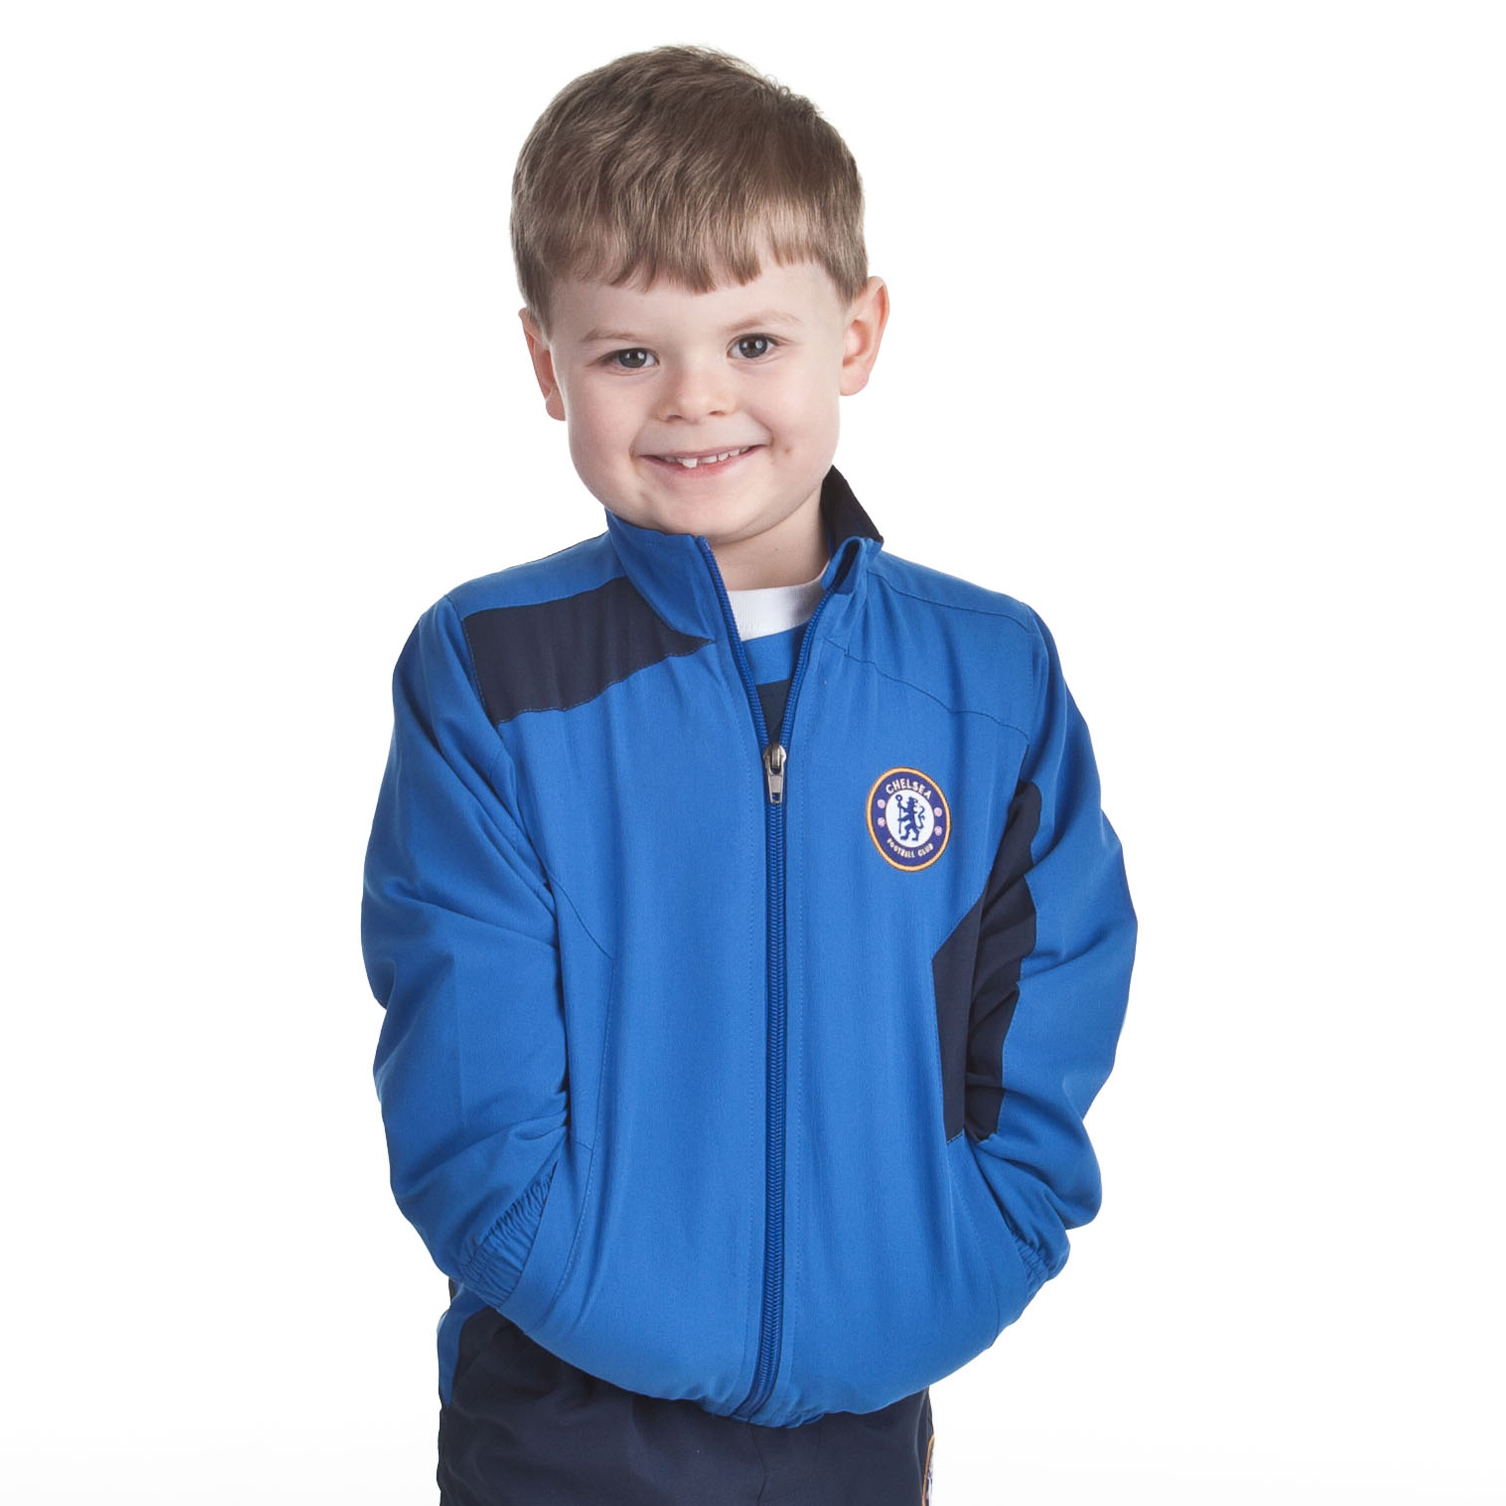 Chelsea Core Leisure Top - Strong Blue - Infant Boys